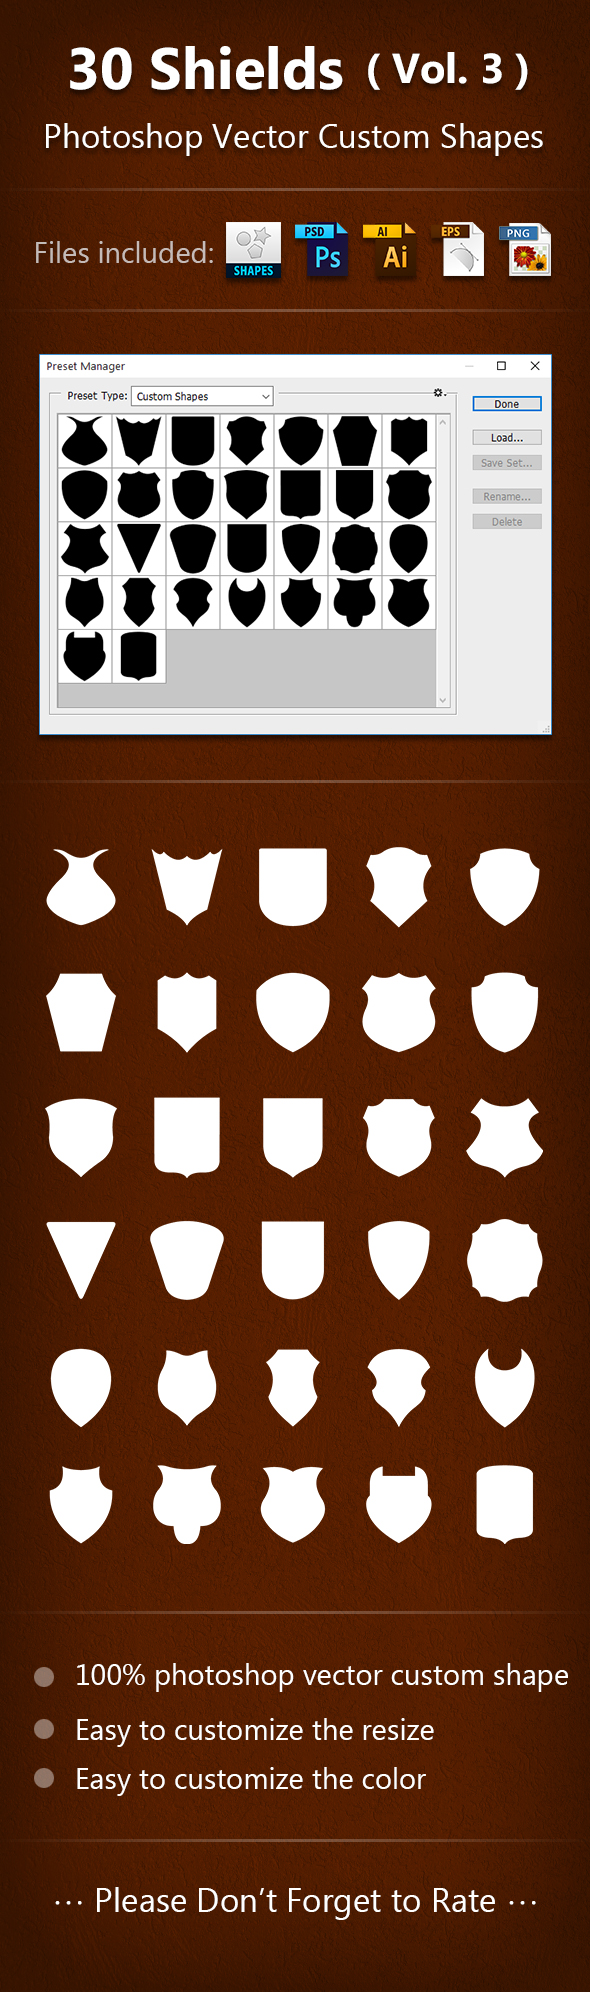 30 Shields Photoshop Vector Custom Shapes ( Vol.3 ) - Add-ons